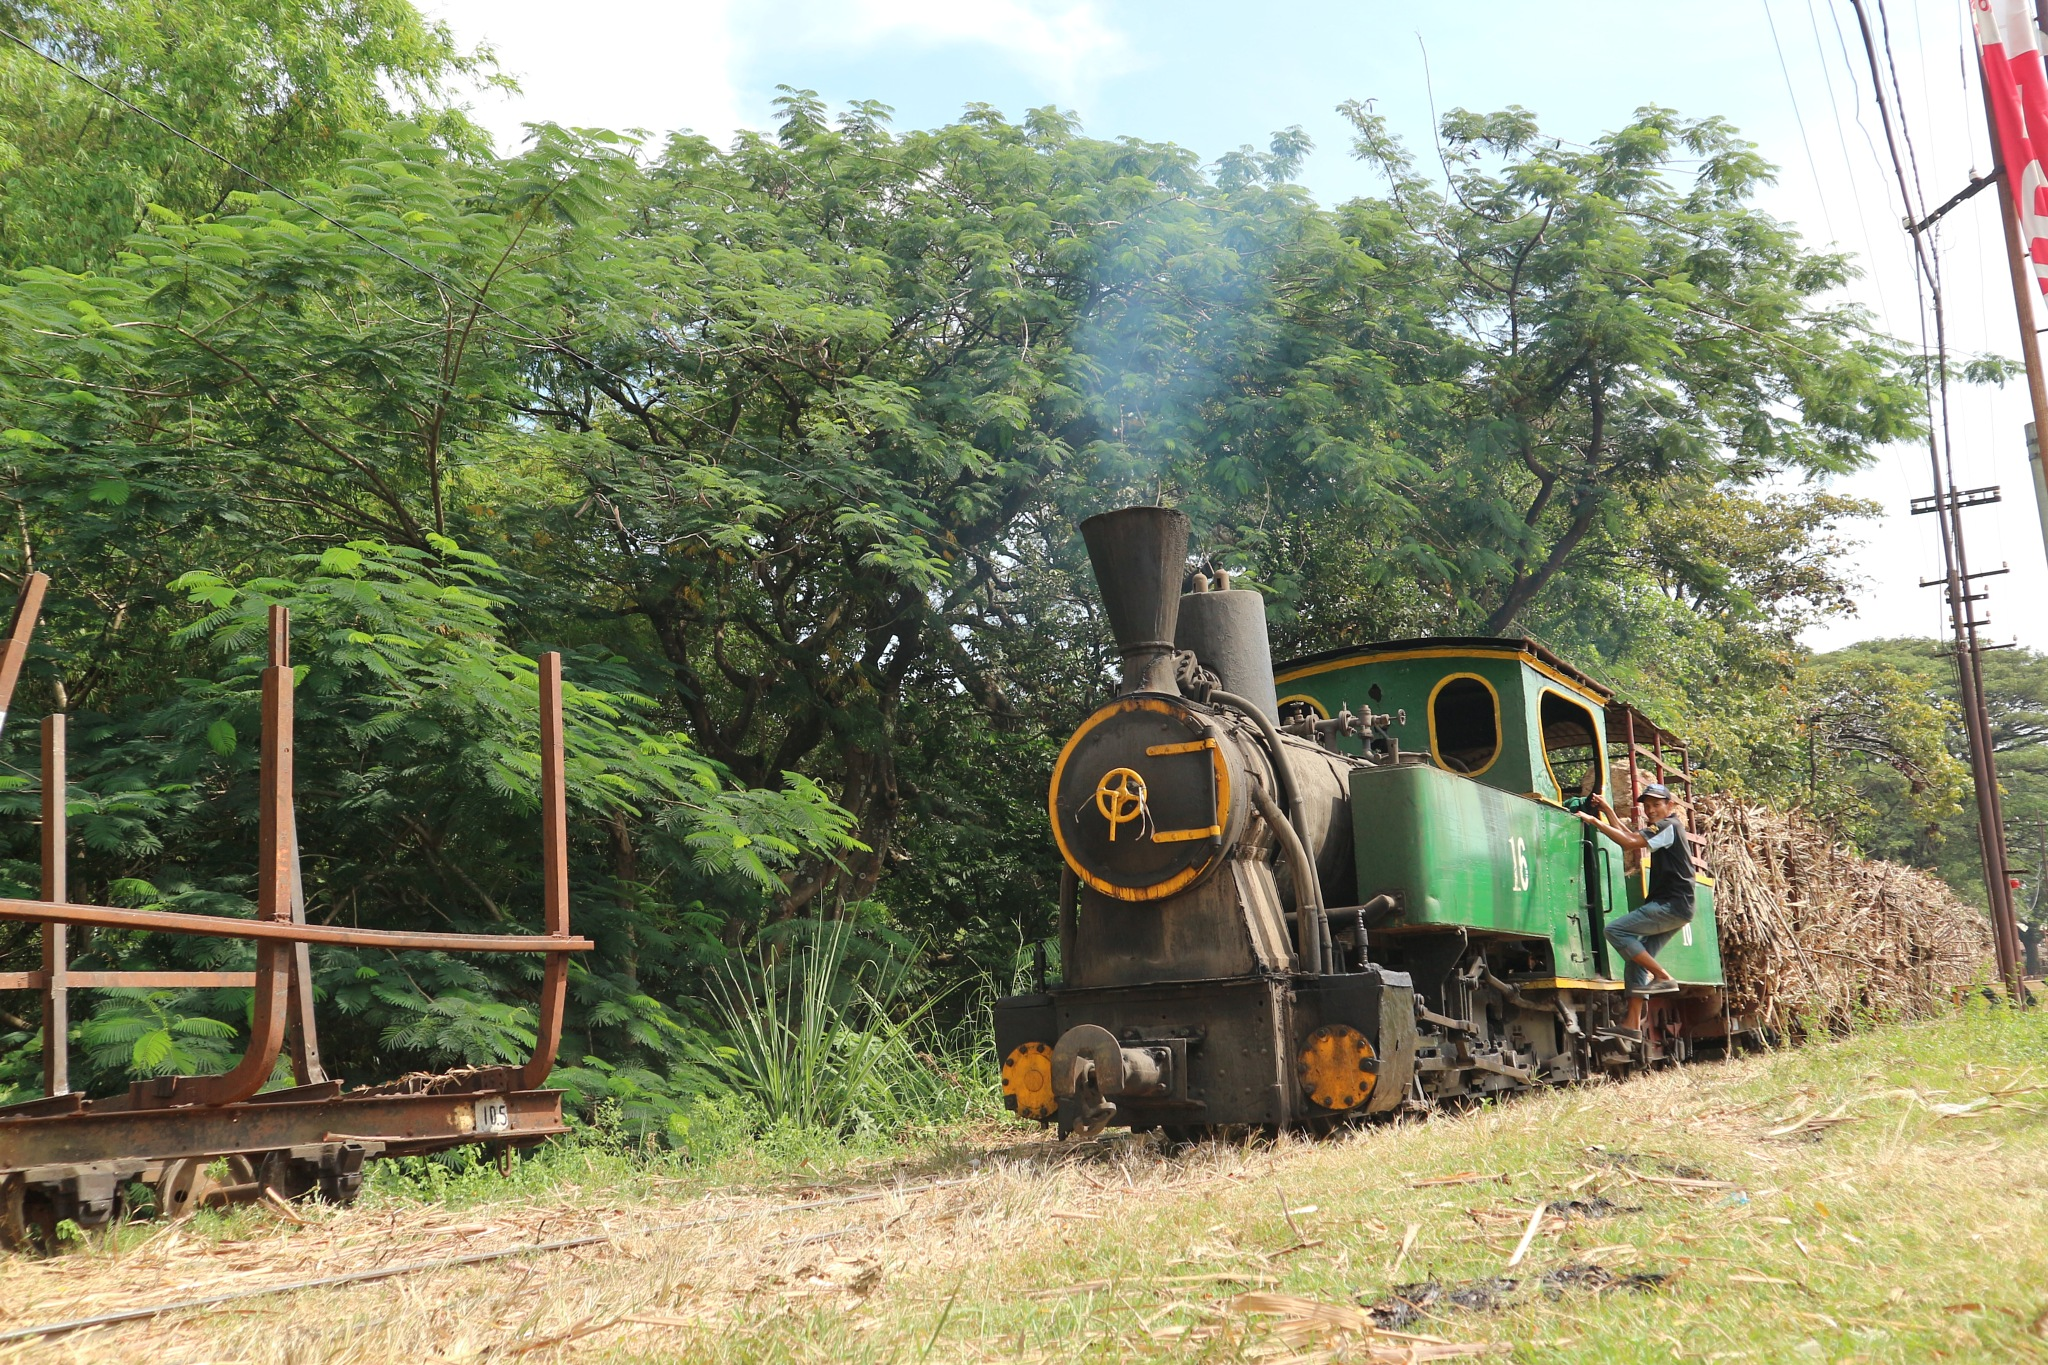 the old locomotive by Fatihah Ibnu Fiqri